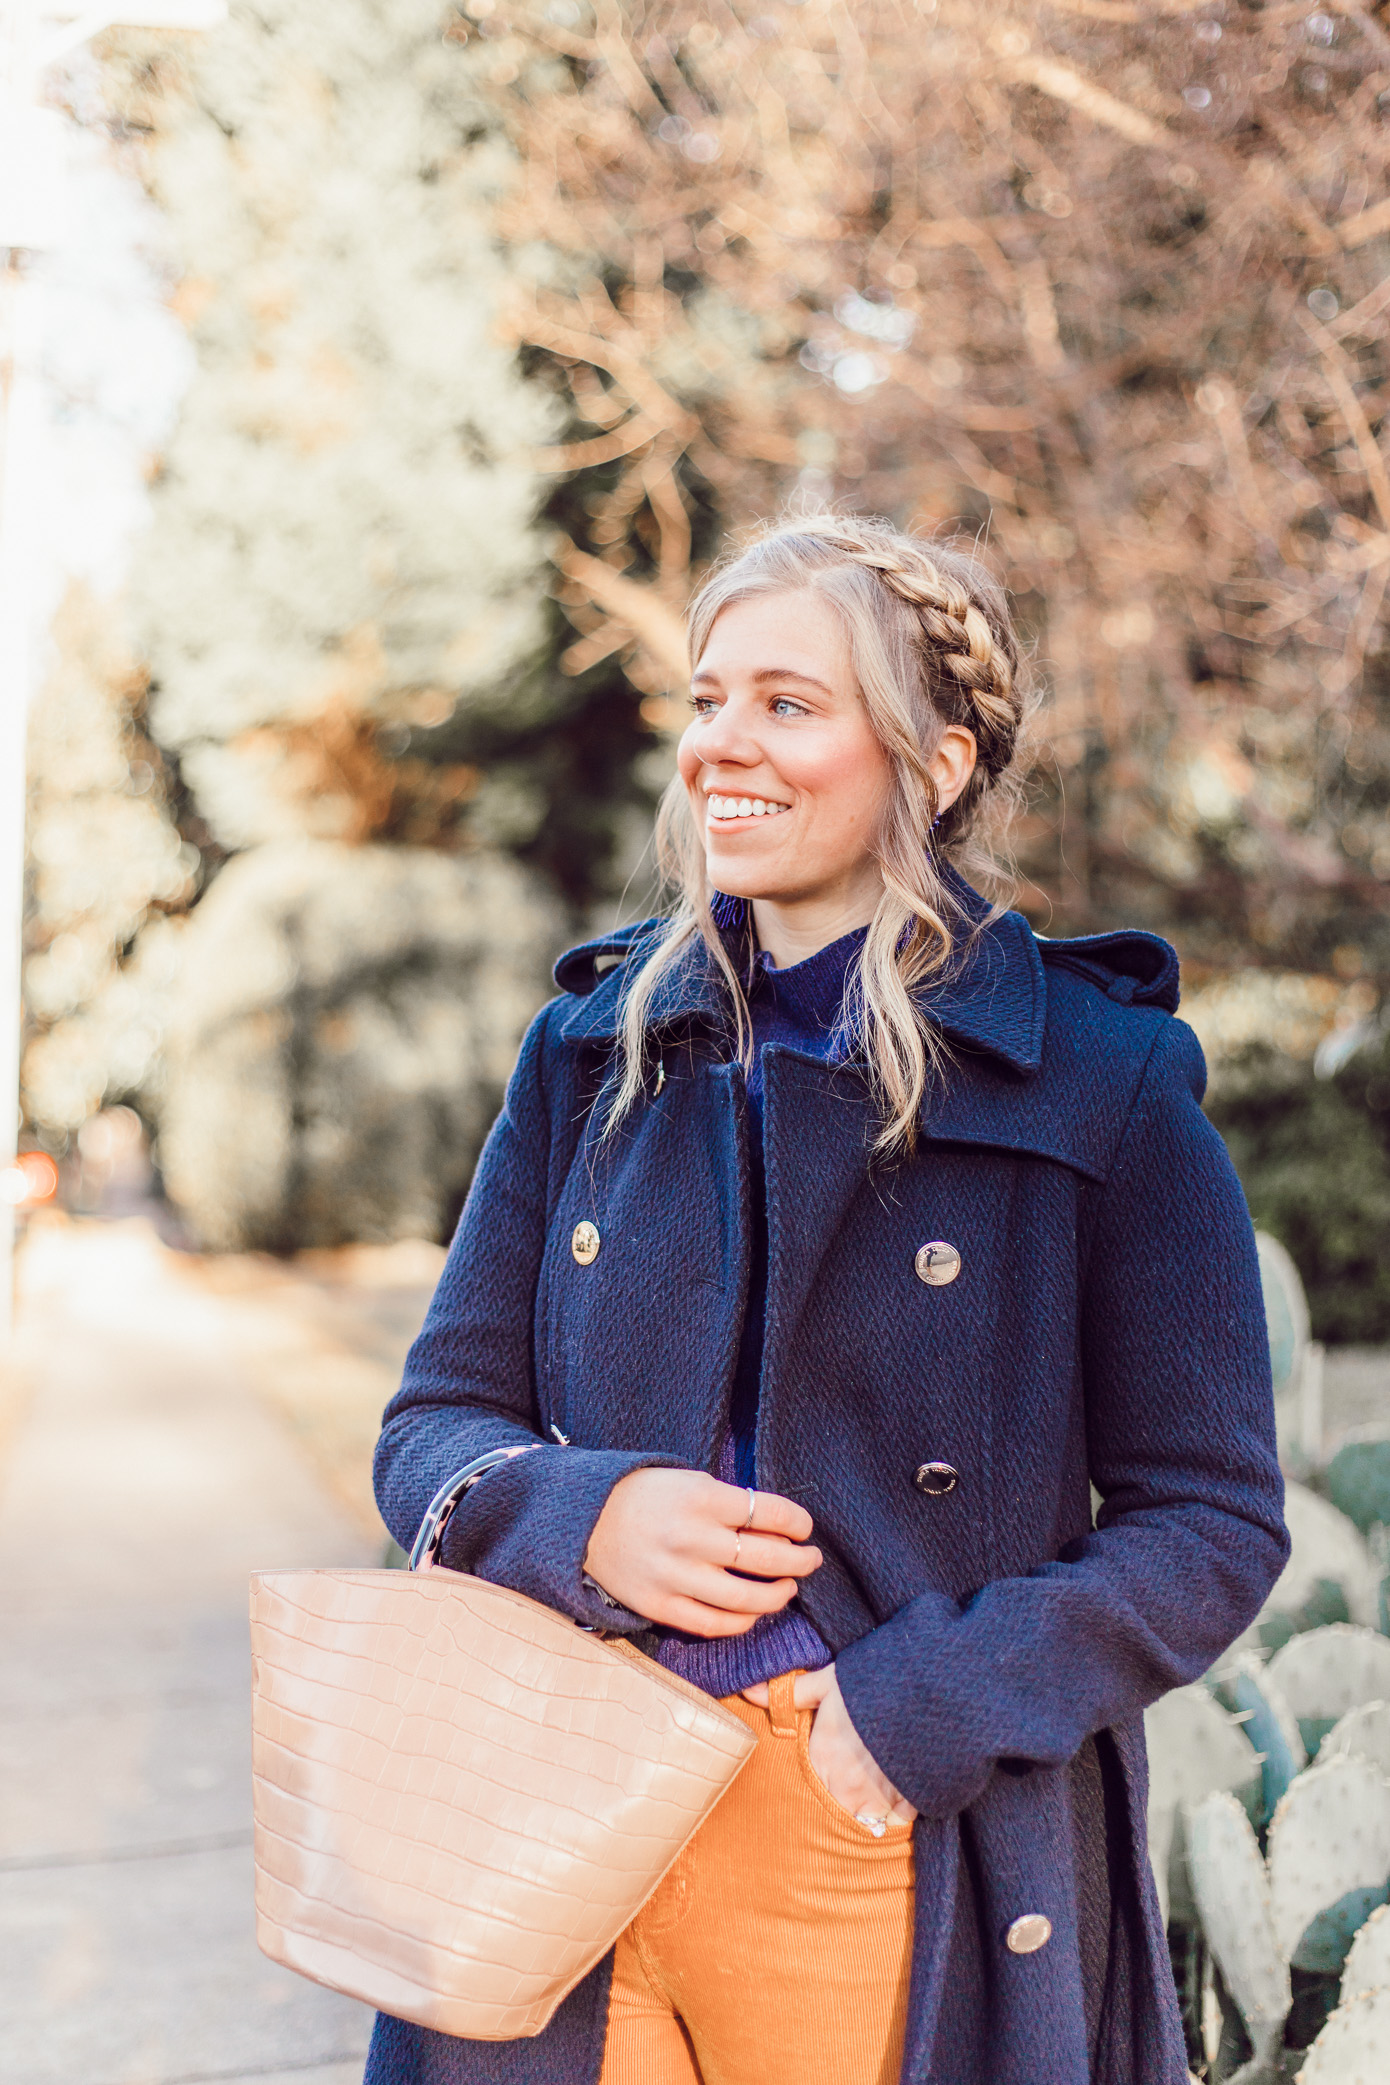 Navy Military Coat, Crown Braid | How to Style Wide-Leg Crop Pants featured on Louella Reese